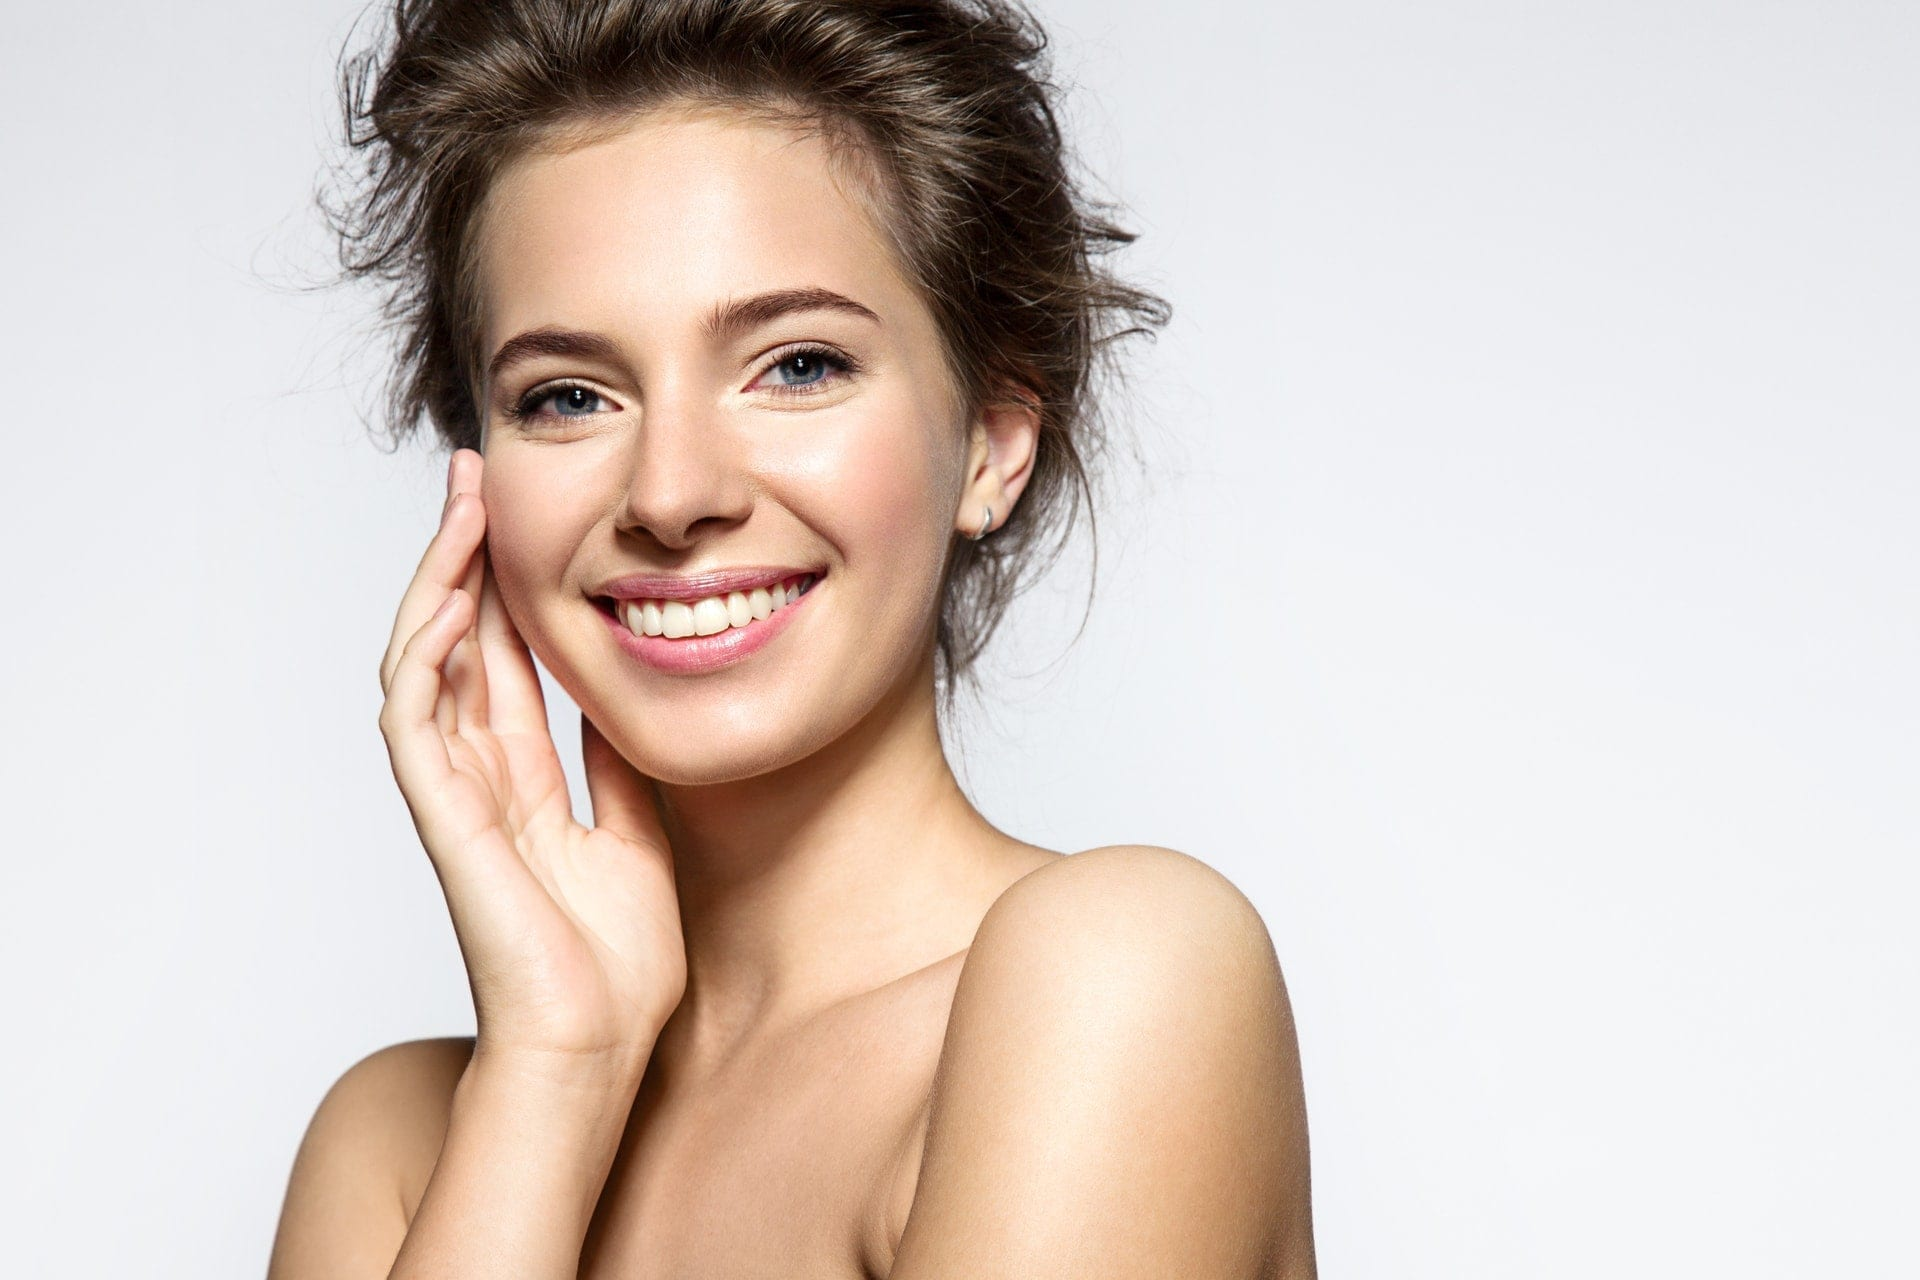 Neck-and-face-lift-non-surgical-PHI-Clinic-London 1920 x 1280